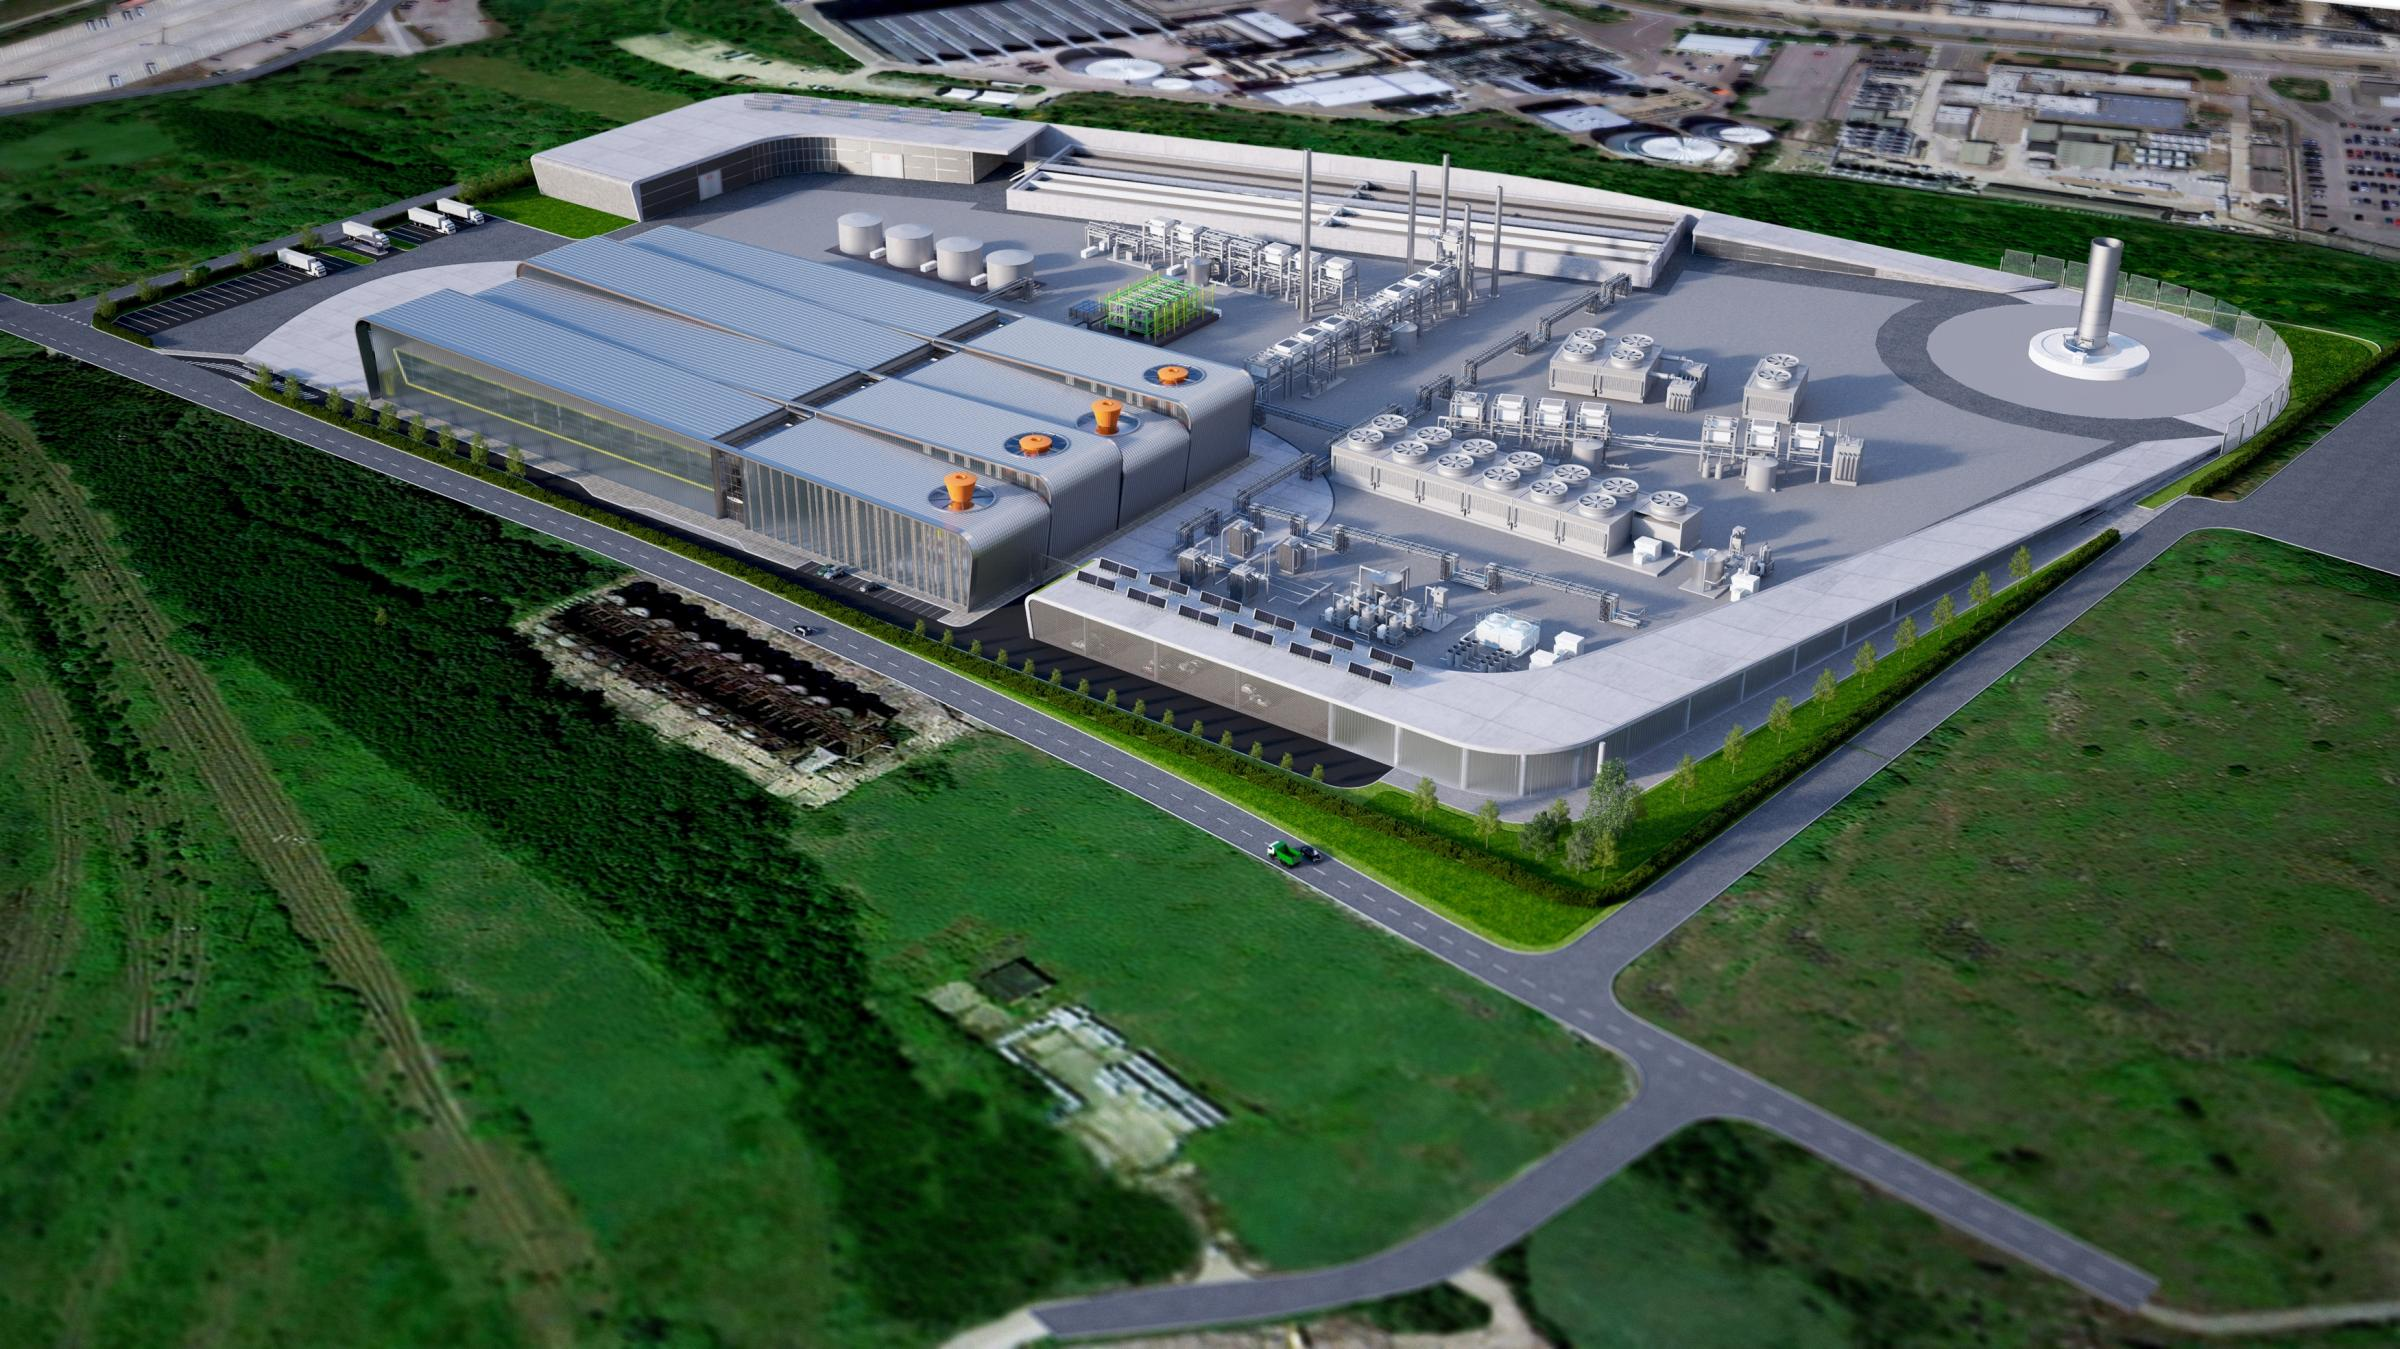 An artists' impression of the proposed waste-to-jet fuel centre, bringing more than 1000 jobs to Thurrock